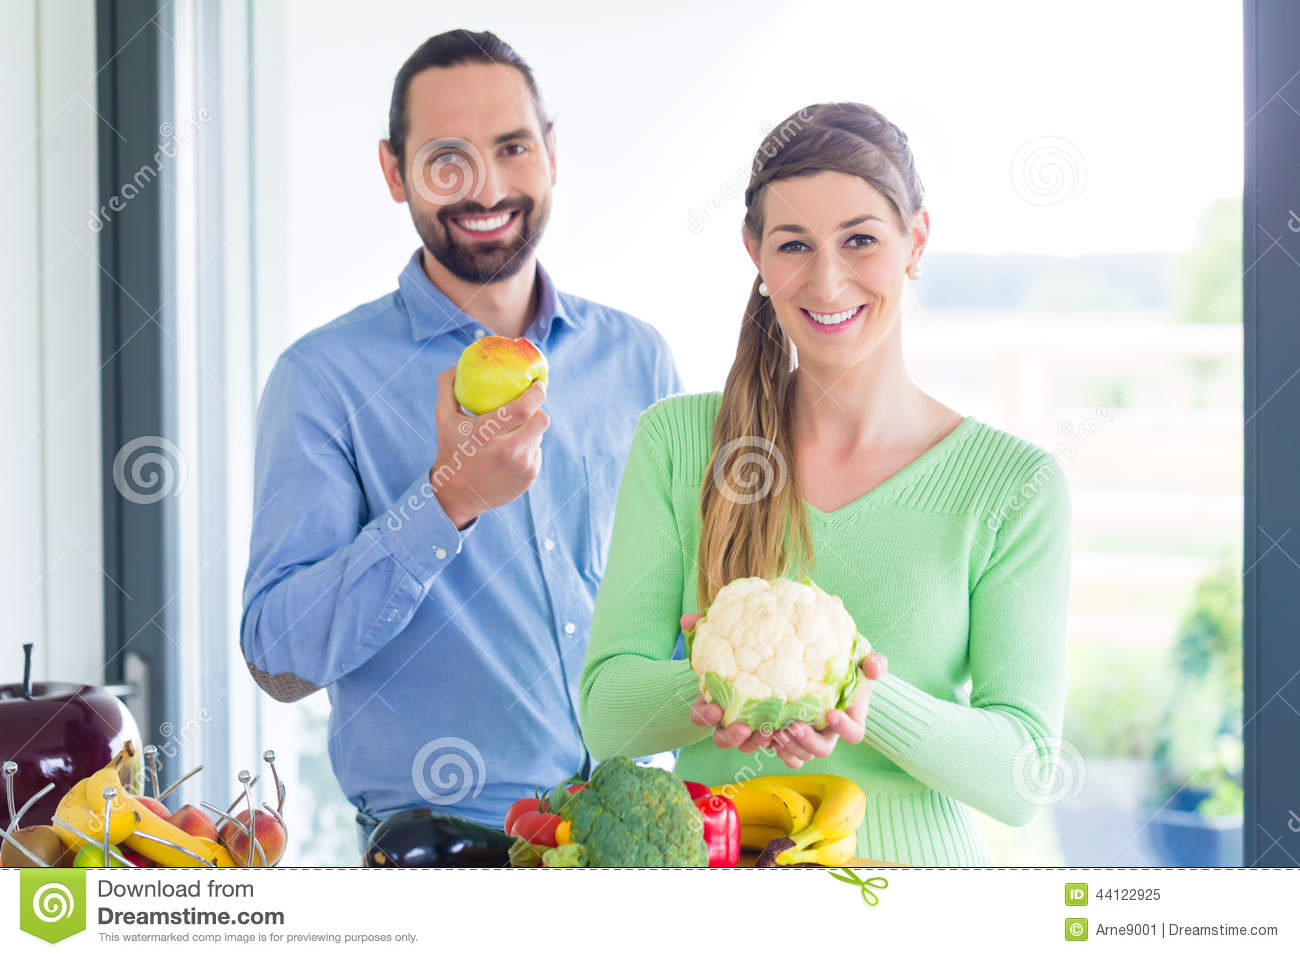 Couple living healthy eating fruits and vegetables